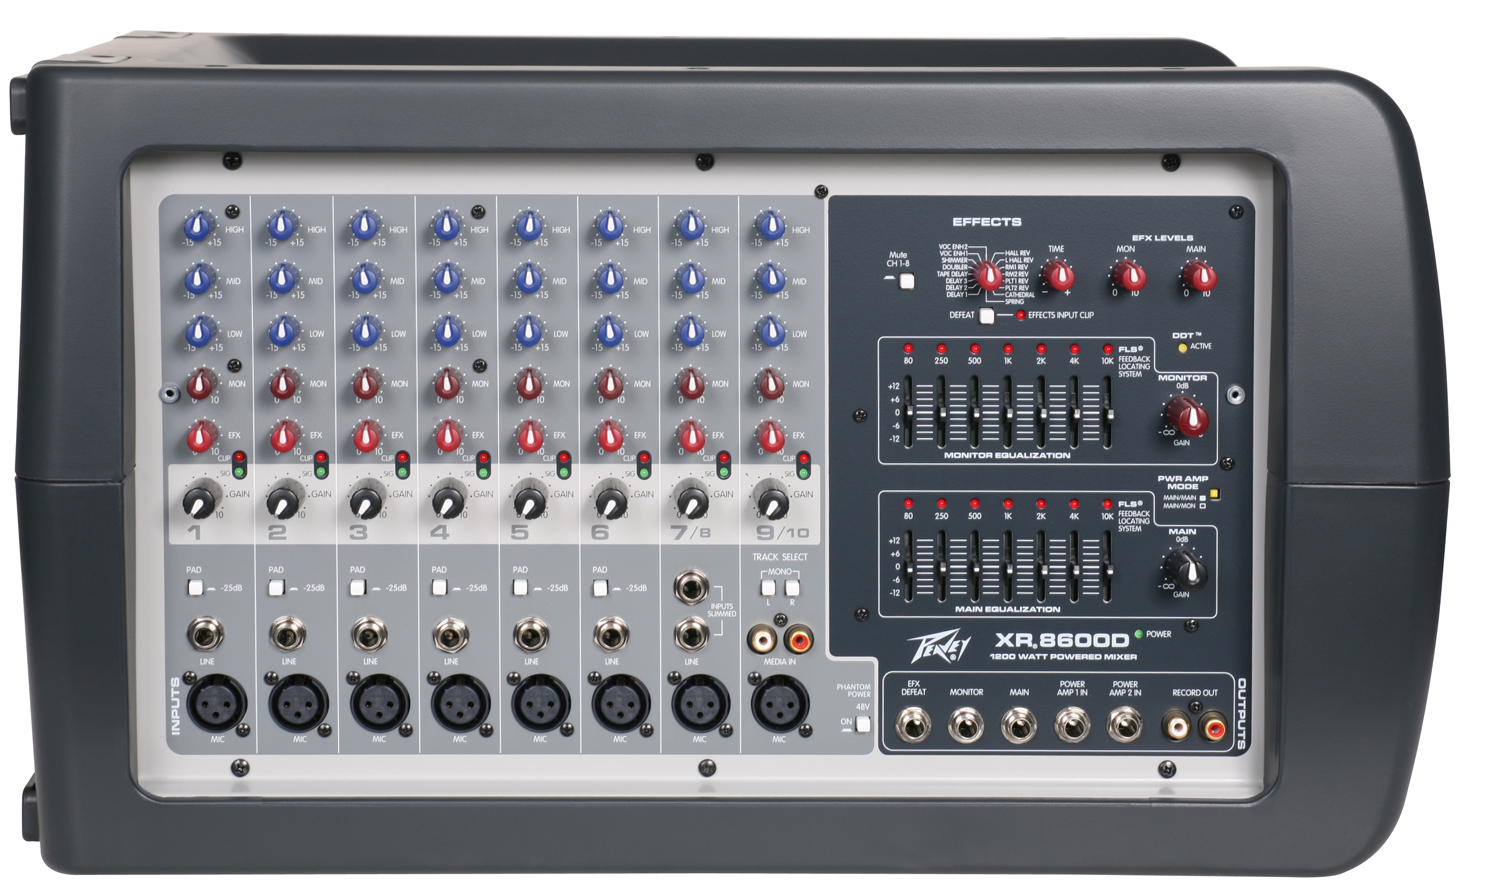 use with good mics reviews peavey xr 8600d audiofanzine rh en audiofanzine com peavey xr8600d schematic Peavey 1200 Mixer